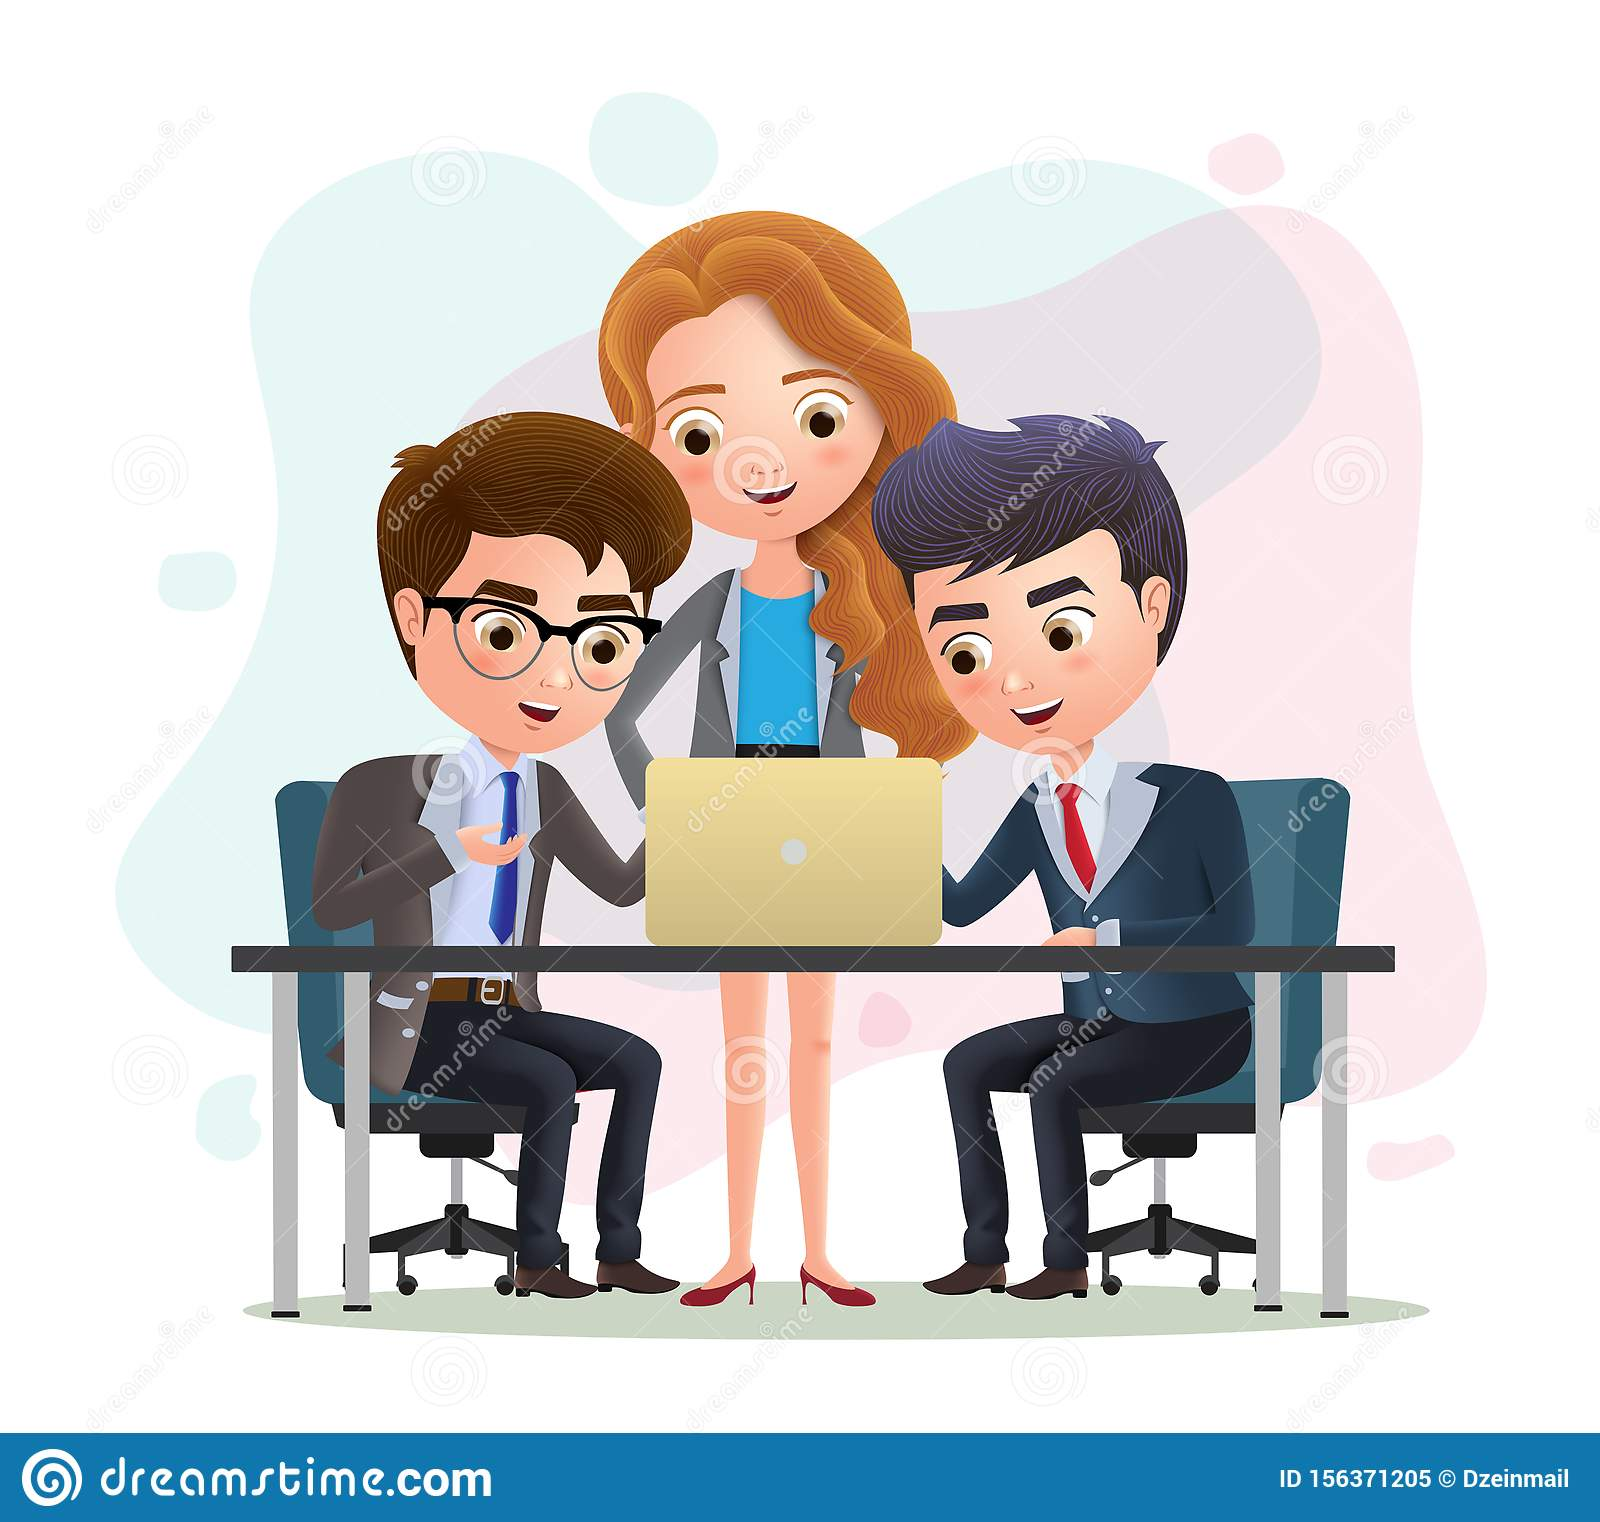 Look Ma I'm Running A Business - Manager Clipart - Free Transparent PNG  Clipart Images Download